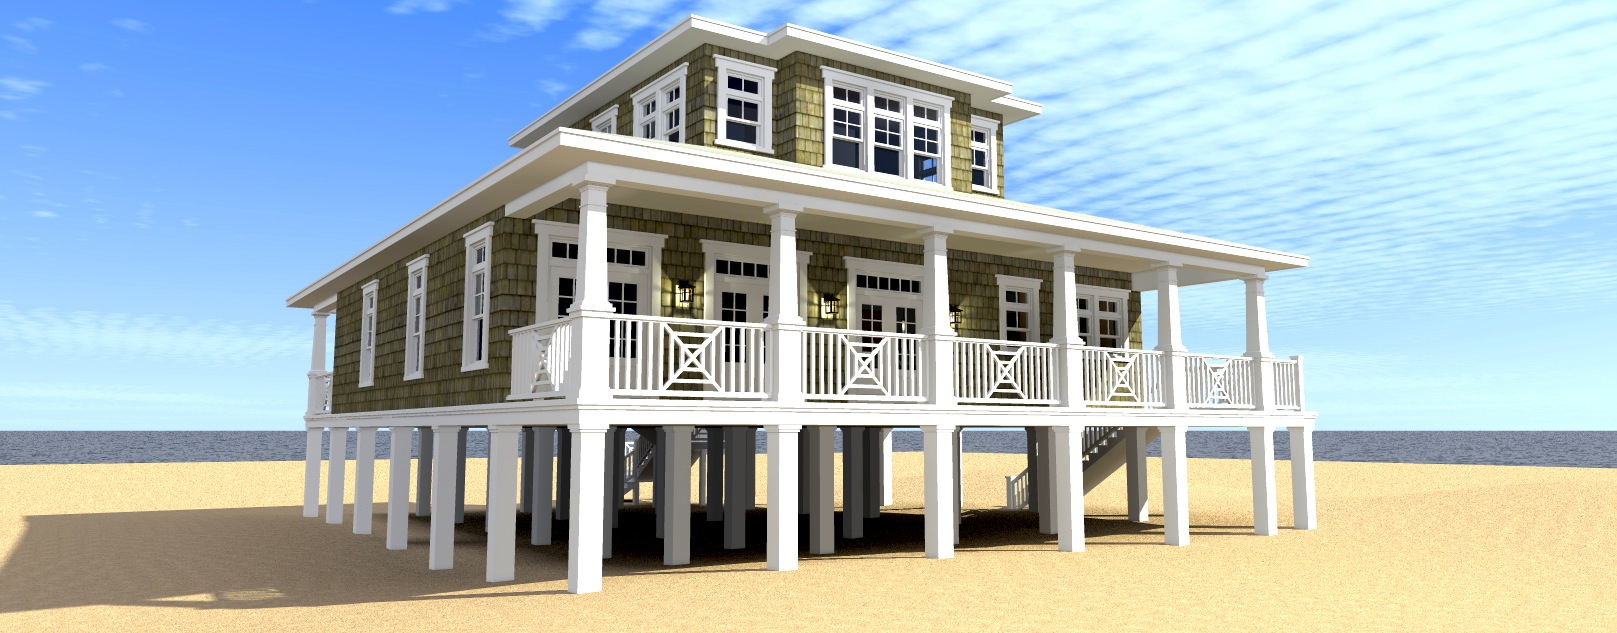 Scuppers house plan by tyree house plans for Reverse living beach house plans